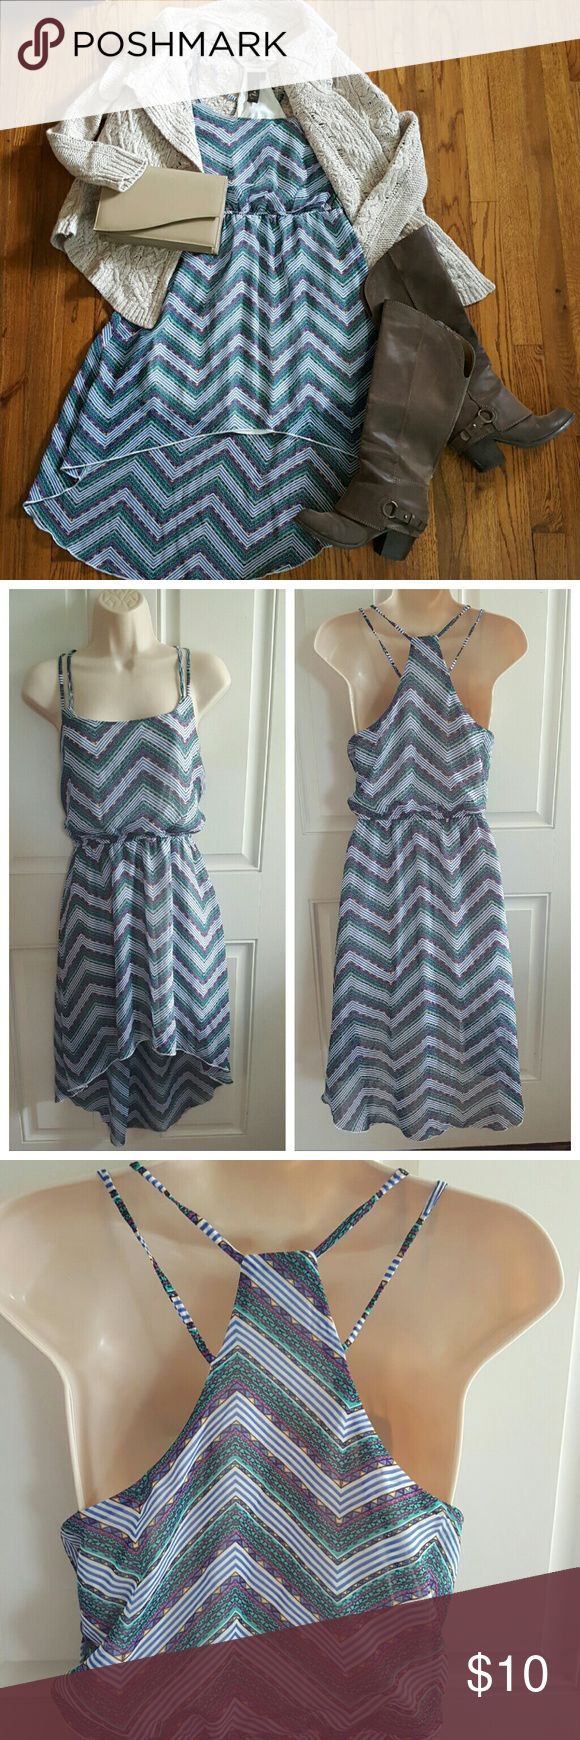 "TRIXXI Multi-Color Chevron Print Hi-Lo Hem Dress Blouson waist. Strappy back. Fully lined. 100% polyester. Excellent Pre-Loved Condition   Bust 18"", Length 31"" front 40"" back Trixxi Dresses"